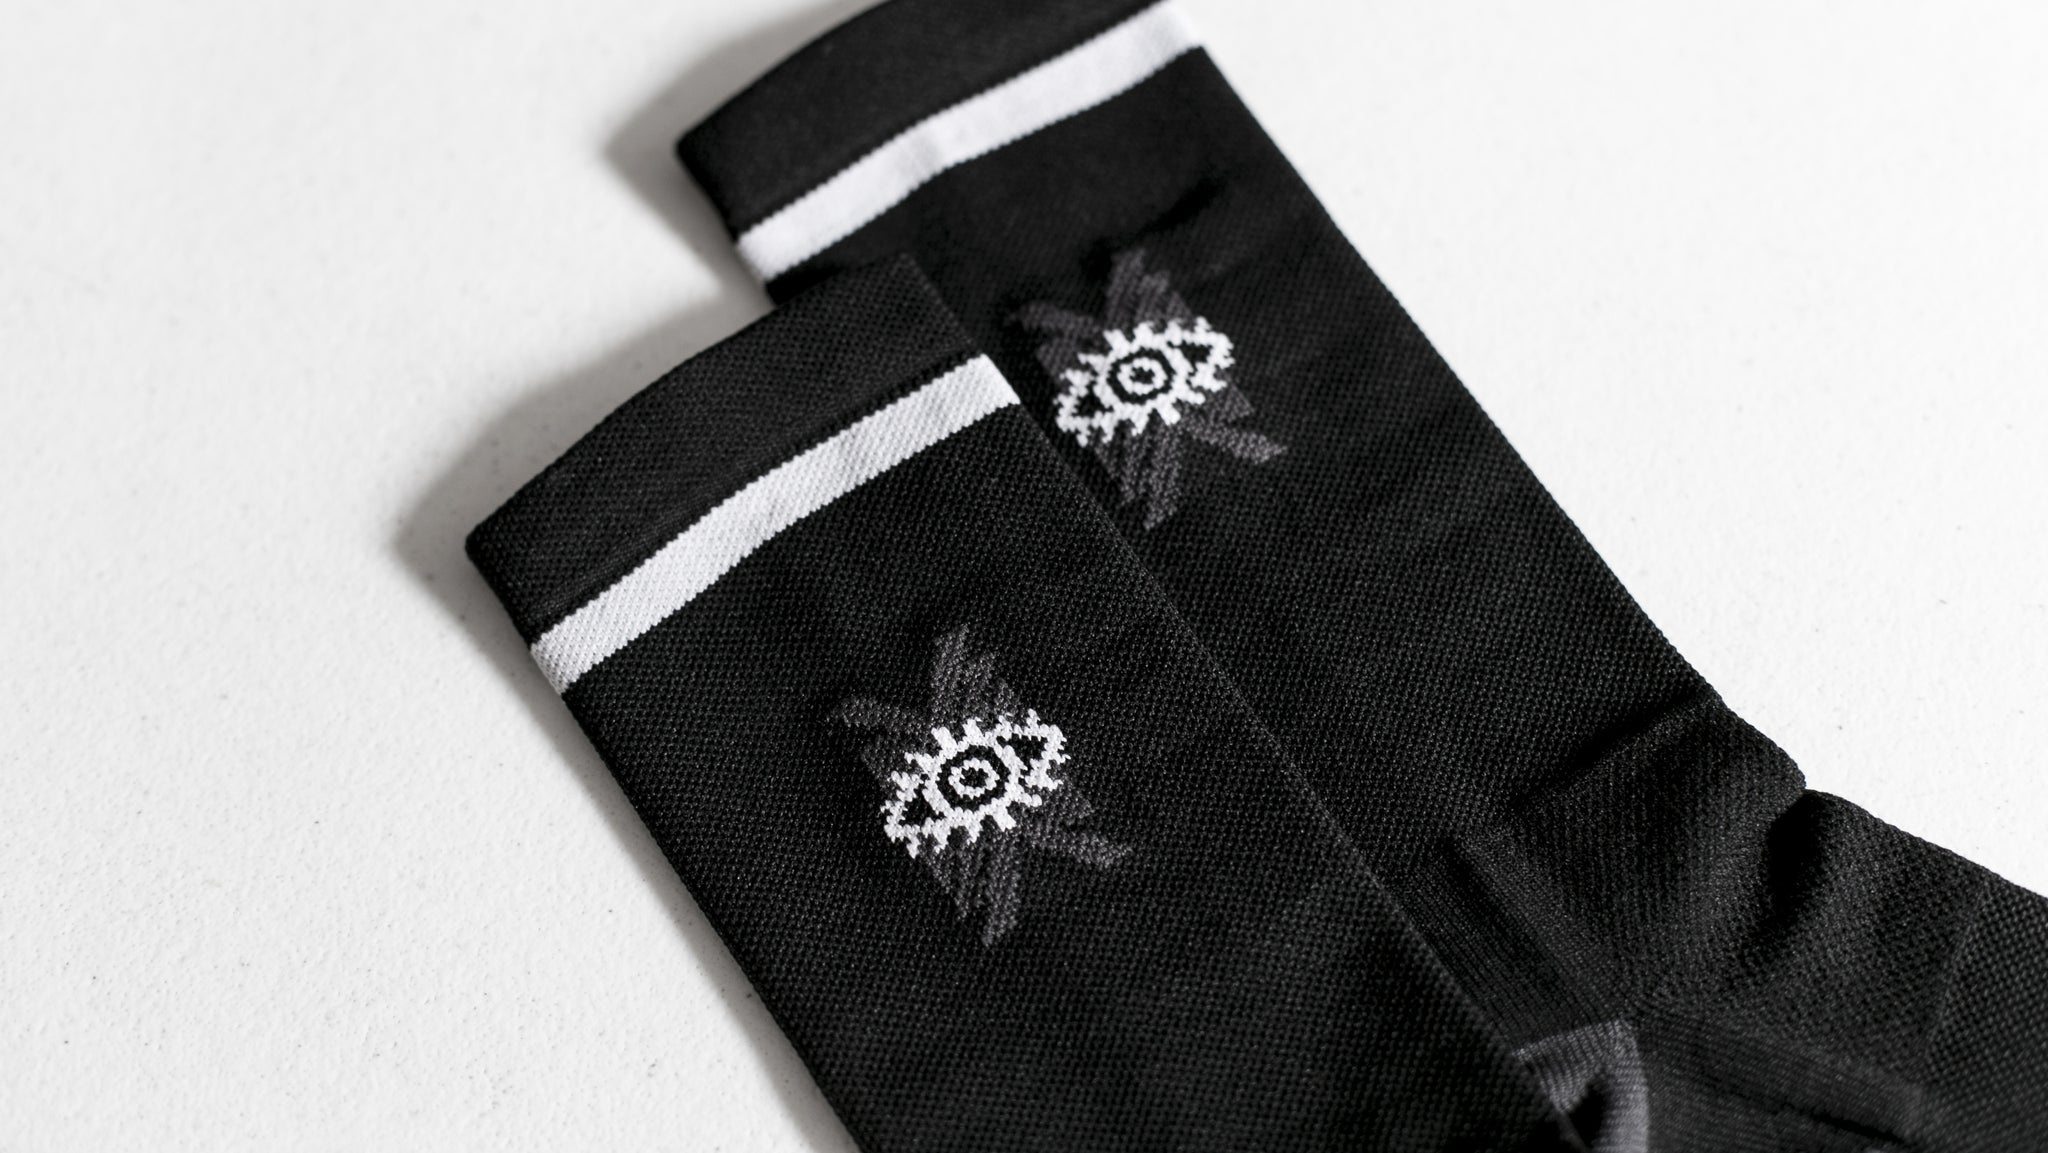 NVAYRK X BLACKMOUTH CO. Cycling Socks (Limited Edition)